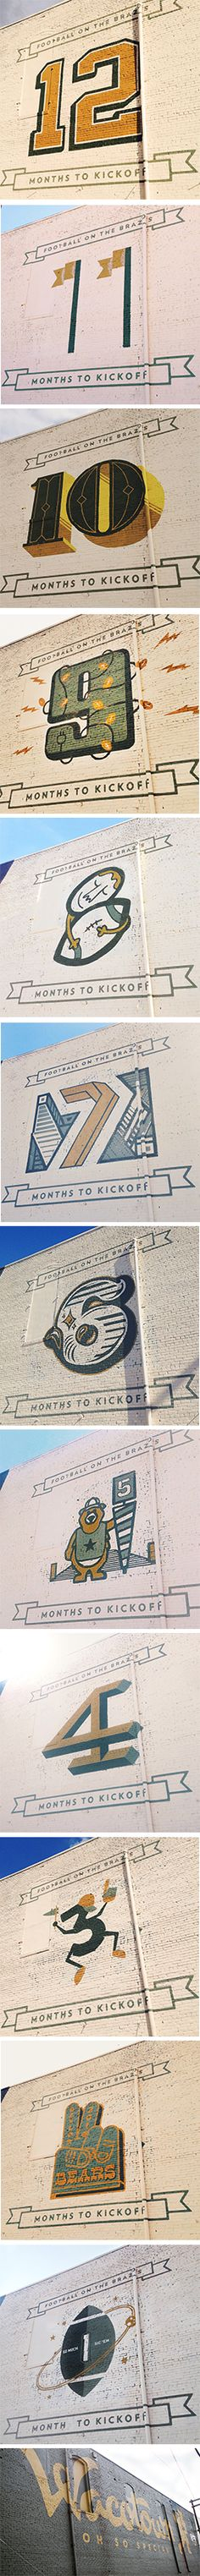 The Wacotown Countdown existed to promote downtown Waco, Baylor's new McLane Stadium, and the upstart design community here in Waco. They set out to paint a monthly countdown at 4th and Franklin. Each month, a different designer designed a number, then painted over the previous month's number. Twelve months of custom numbers by different designers, all pointing toward the first kickoff in the new stadium.